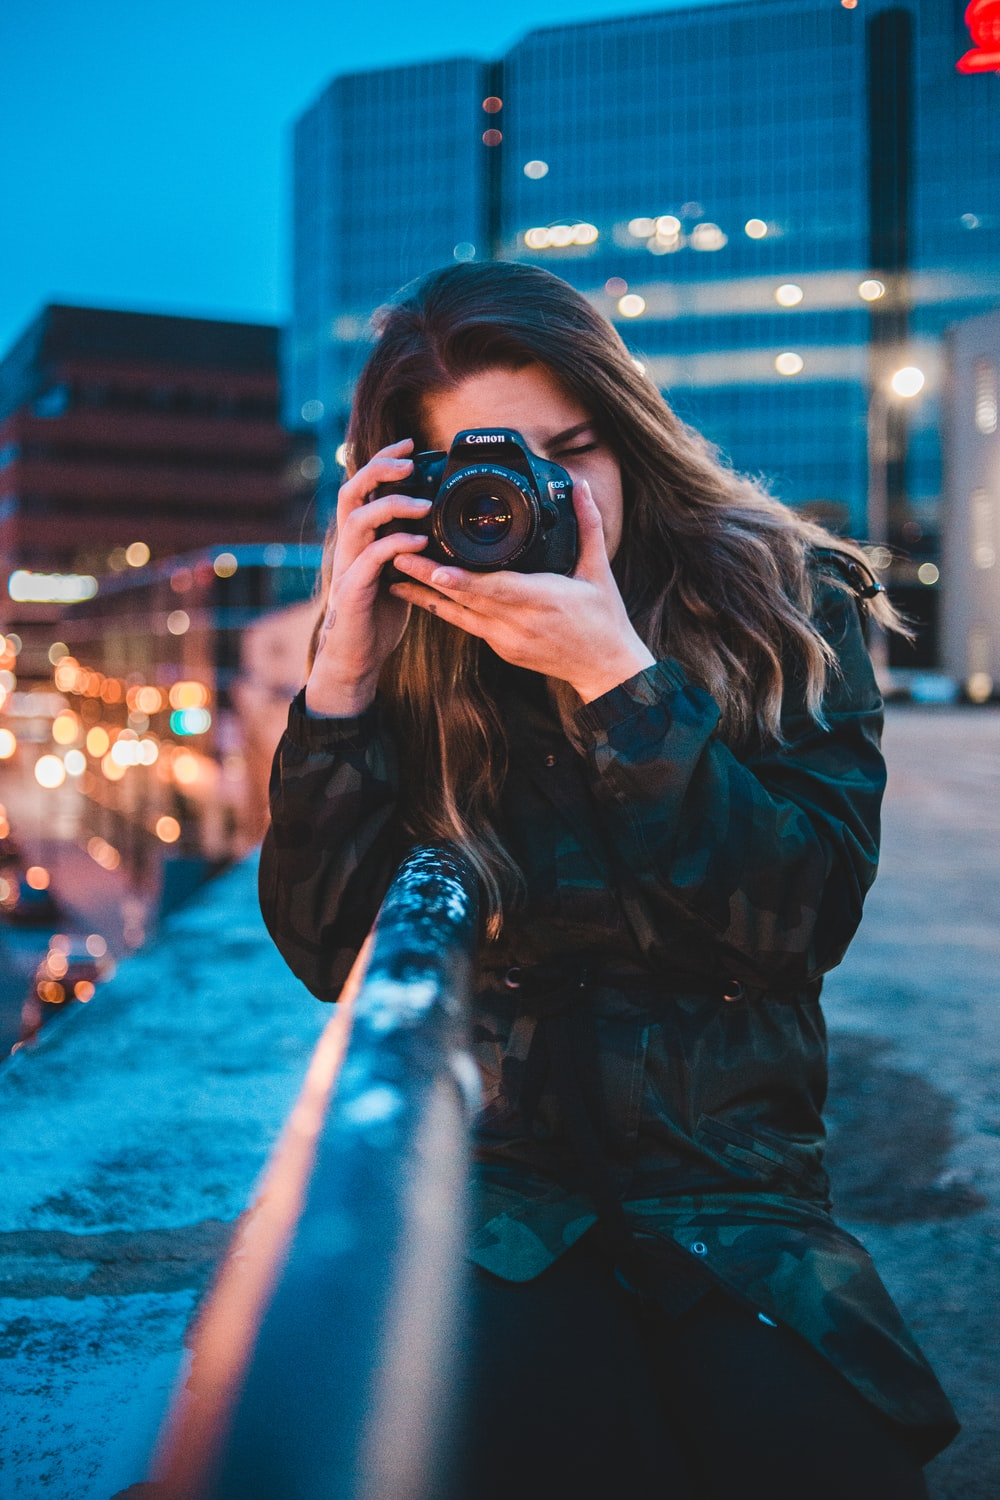 Best 500 Photography Images Hq Download Free Pictures Stock Photos On Unsplash